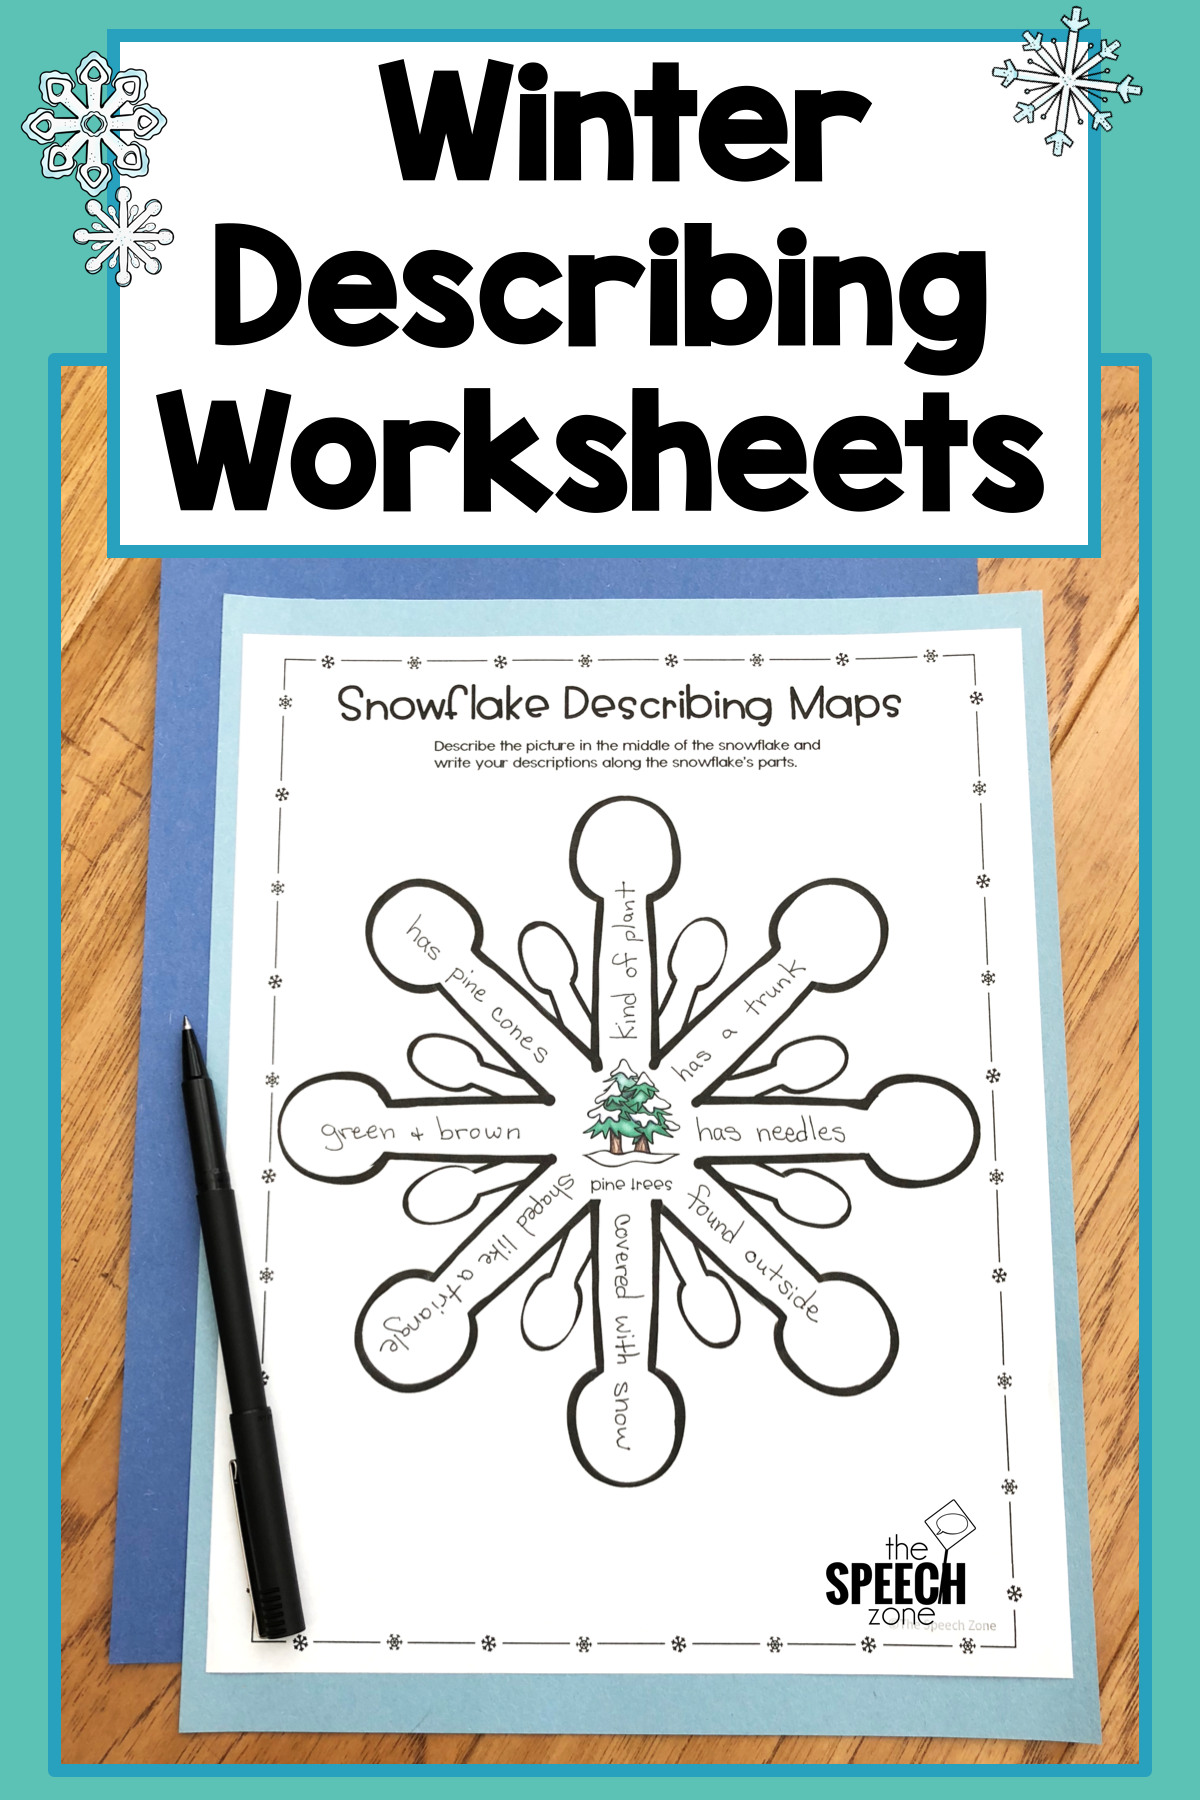 Winter Describing Vocabulary Graphic Organizer Worksheets